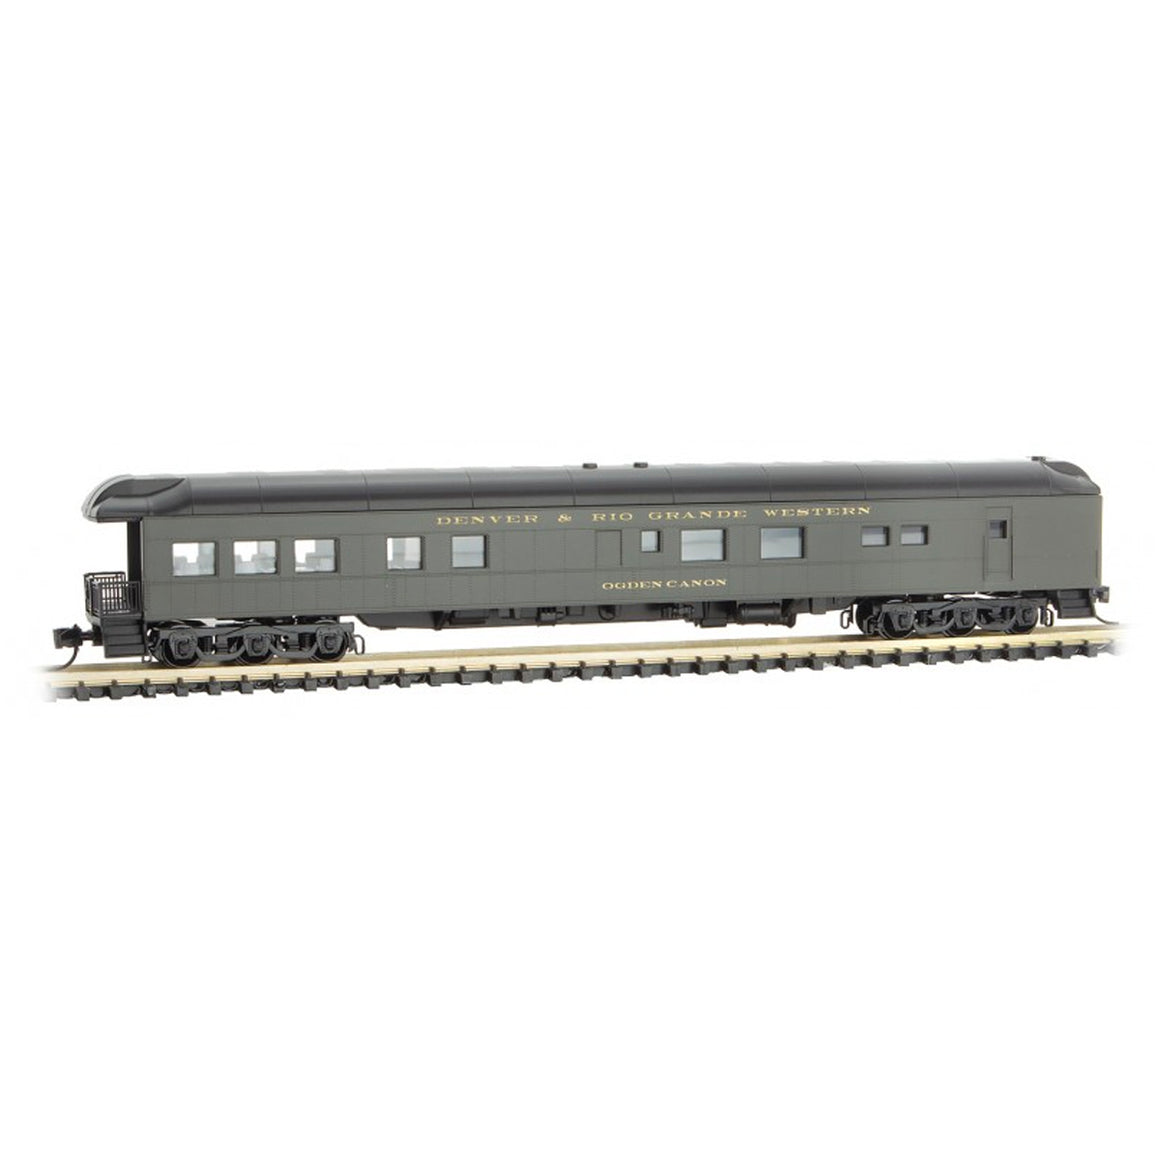 N Scale: Heavyweight Modernized Business Car - D&RGW 'Ogden Canyon'